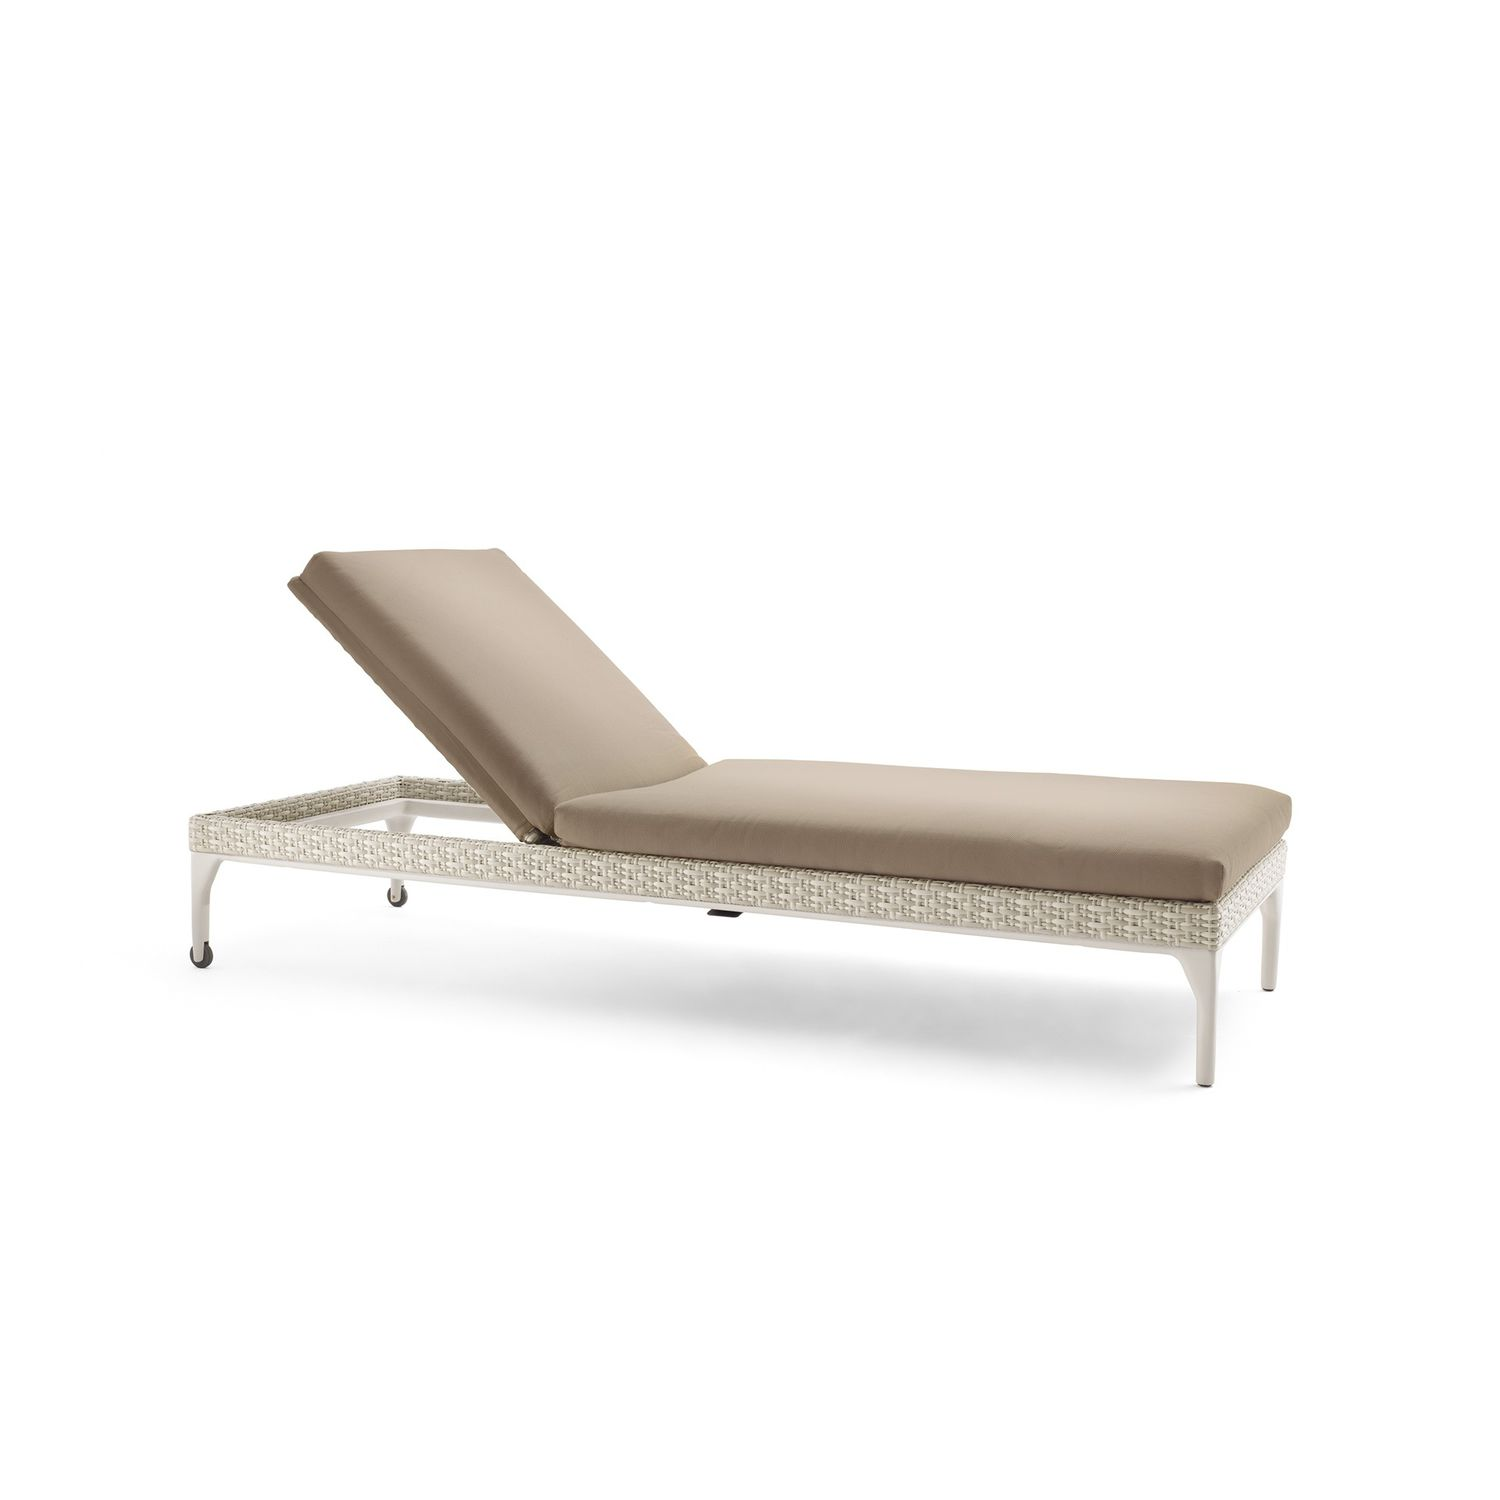 design ideas large stripe and patio chairs towel lounge garden chaise outdoor contemporary table terry of beach full x cover sun size style chair pool clearance luxury furniture sets plastic bench